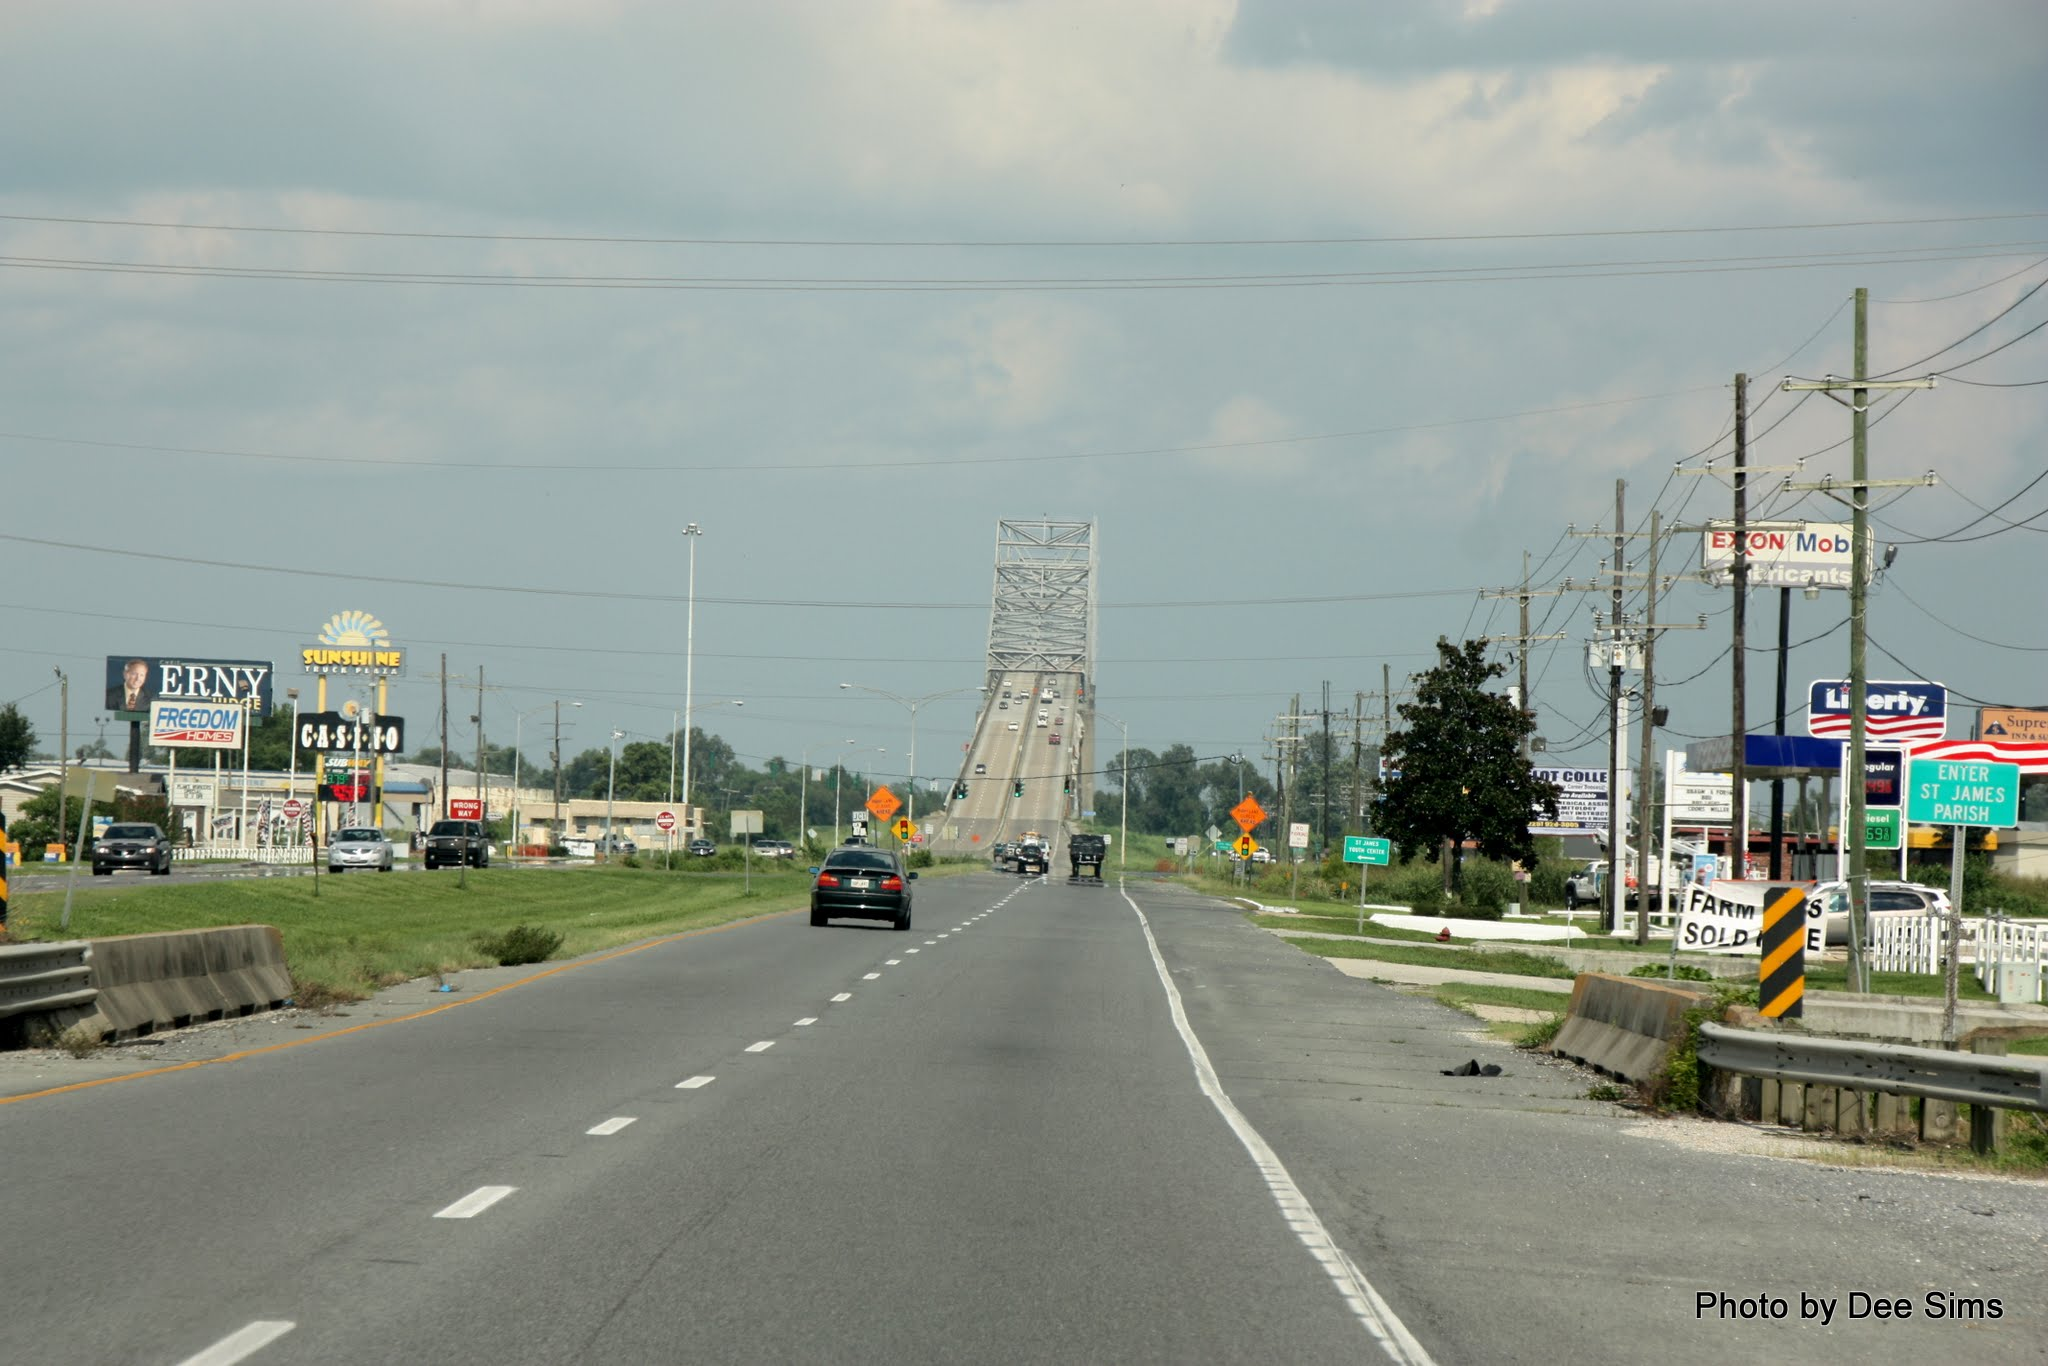 Photo: (Year 3) Day 63 - Another Bridge Ahead Crossing the Mississippi